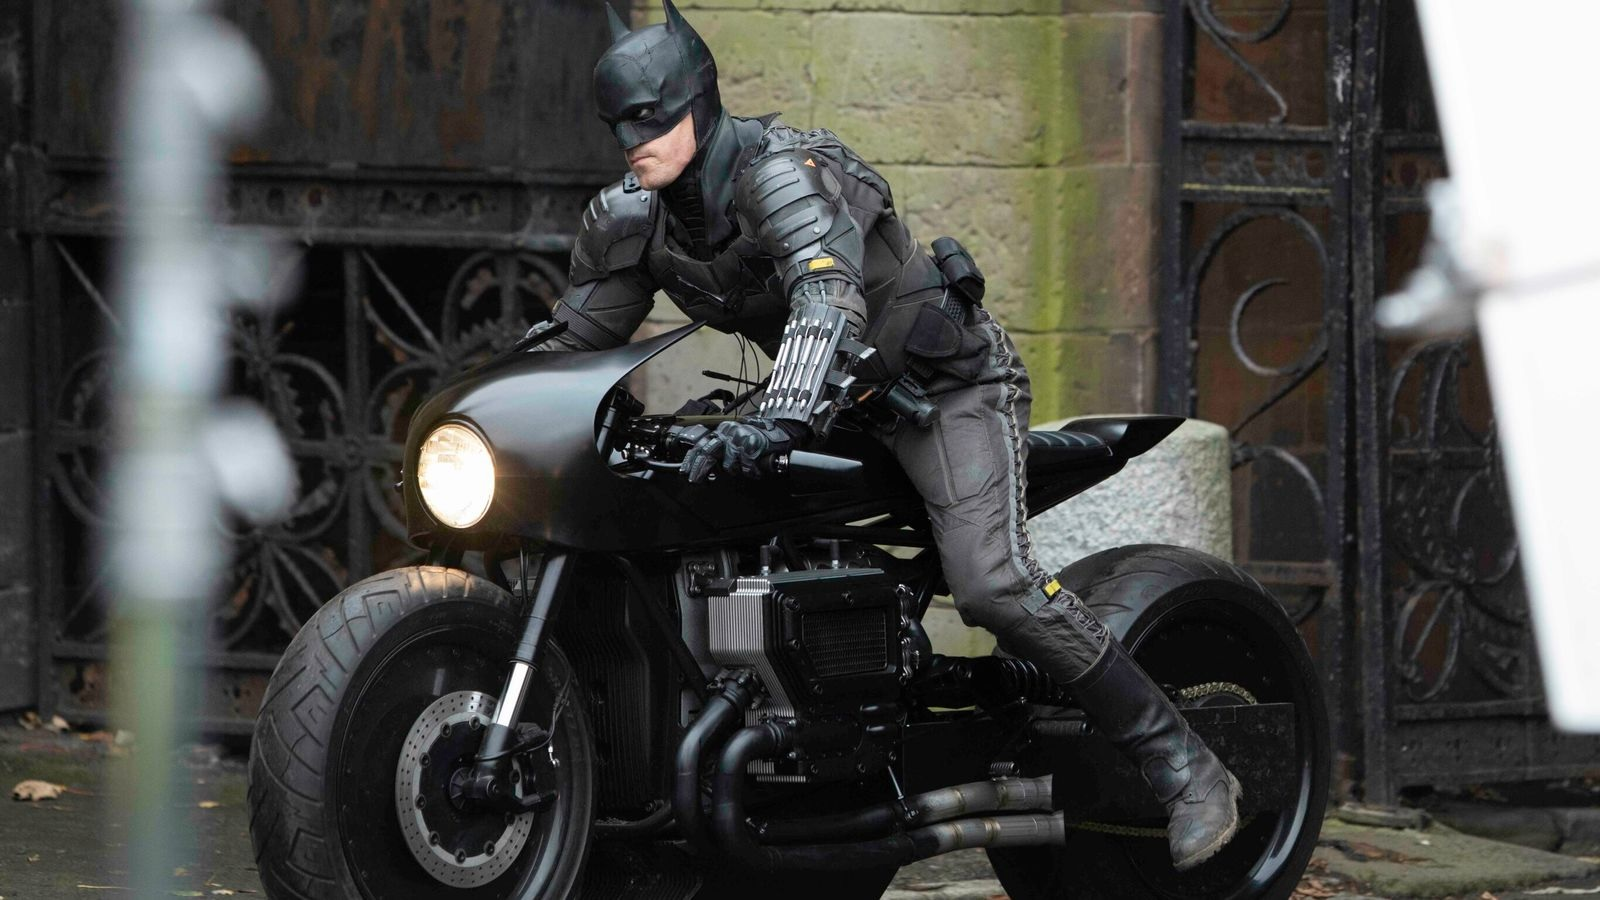 """Robert Pattinson's stunt double gives us a good look at both the new Batsuit and one of Bruce Wayne's wonderful toys during filming for """"The Batman""""."""